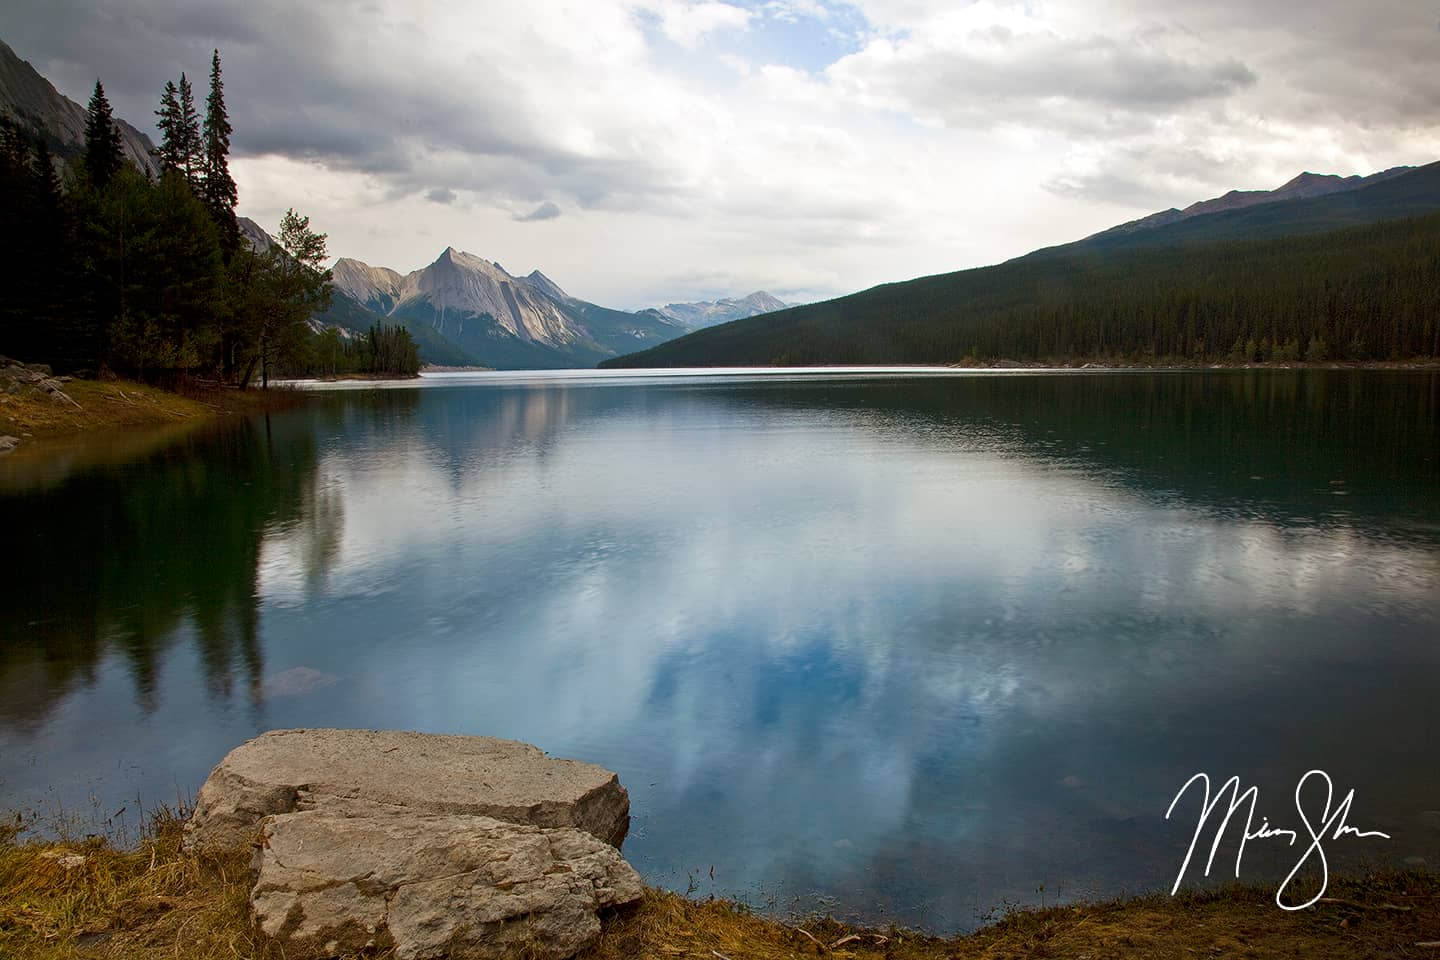 Open edition fine art print of Medicine Lake from Mickey Shannon Photography. Location: Medicine Lake, Jasper National Park, Alberta, Canada